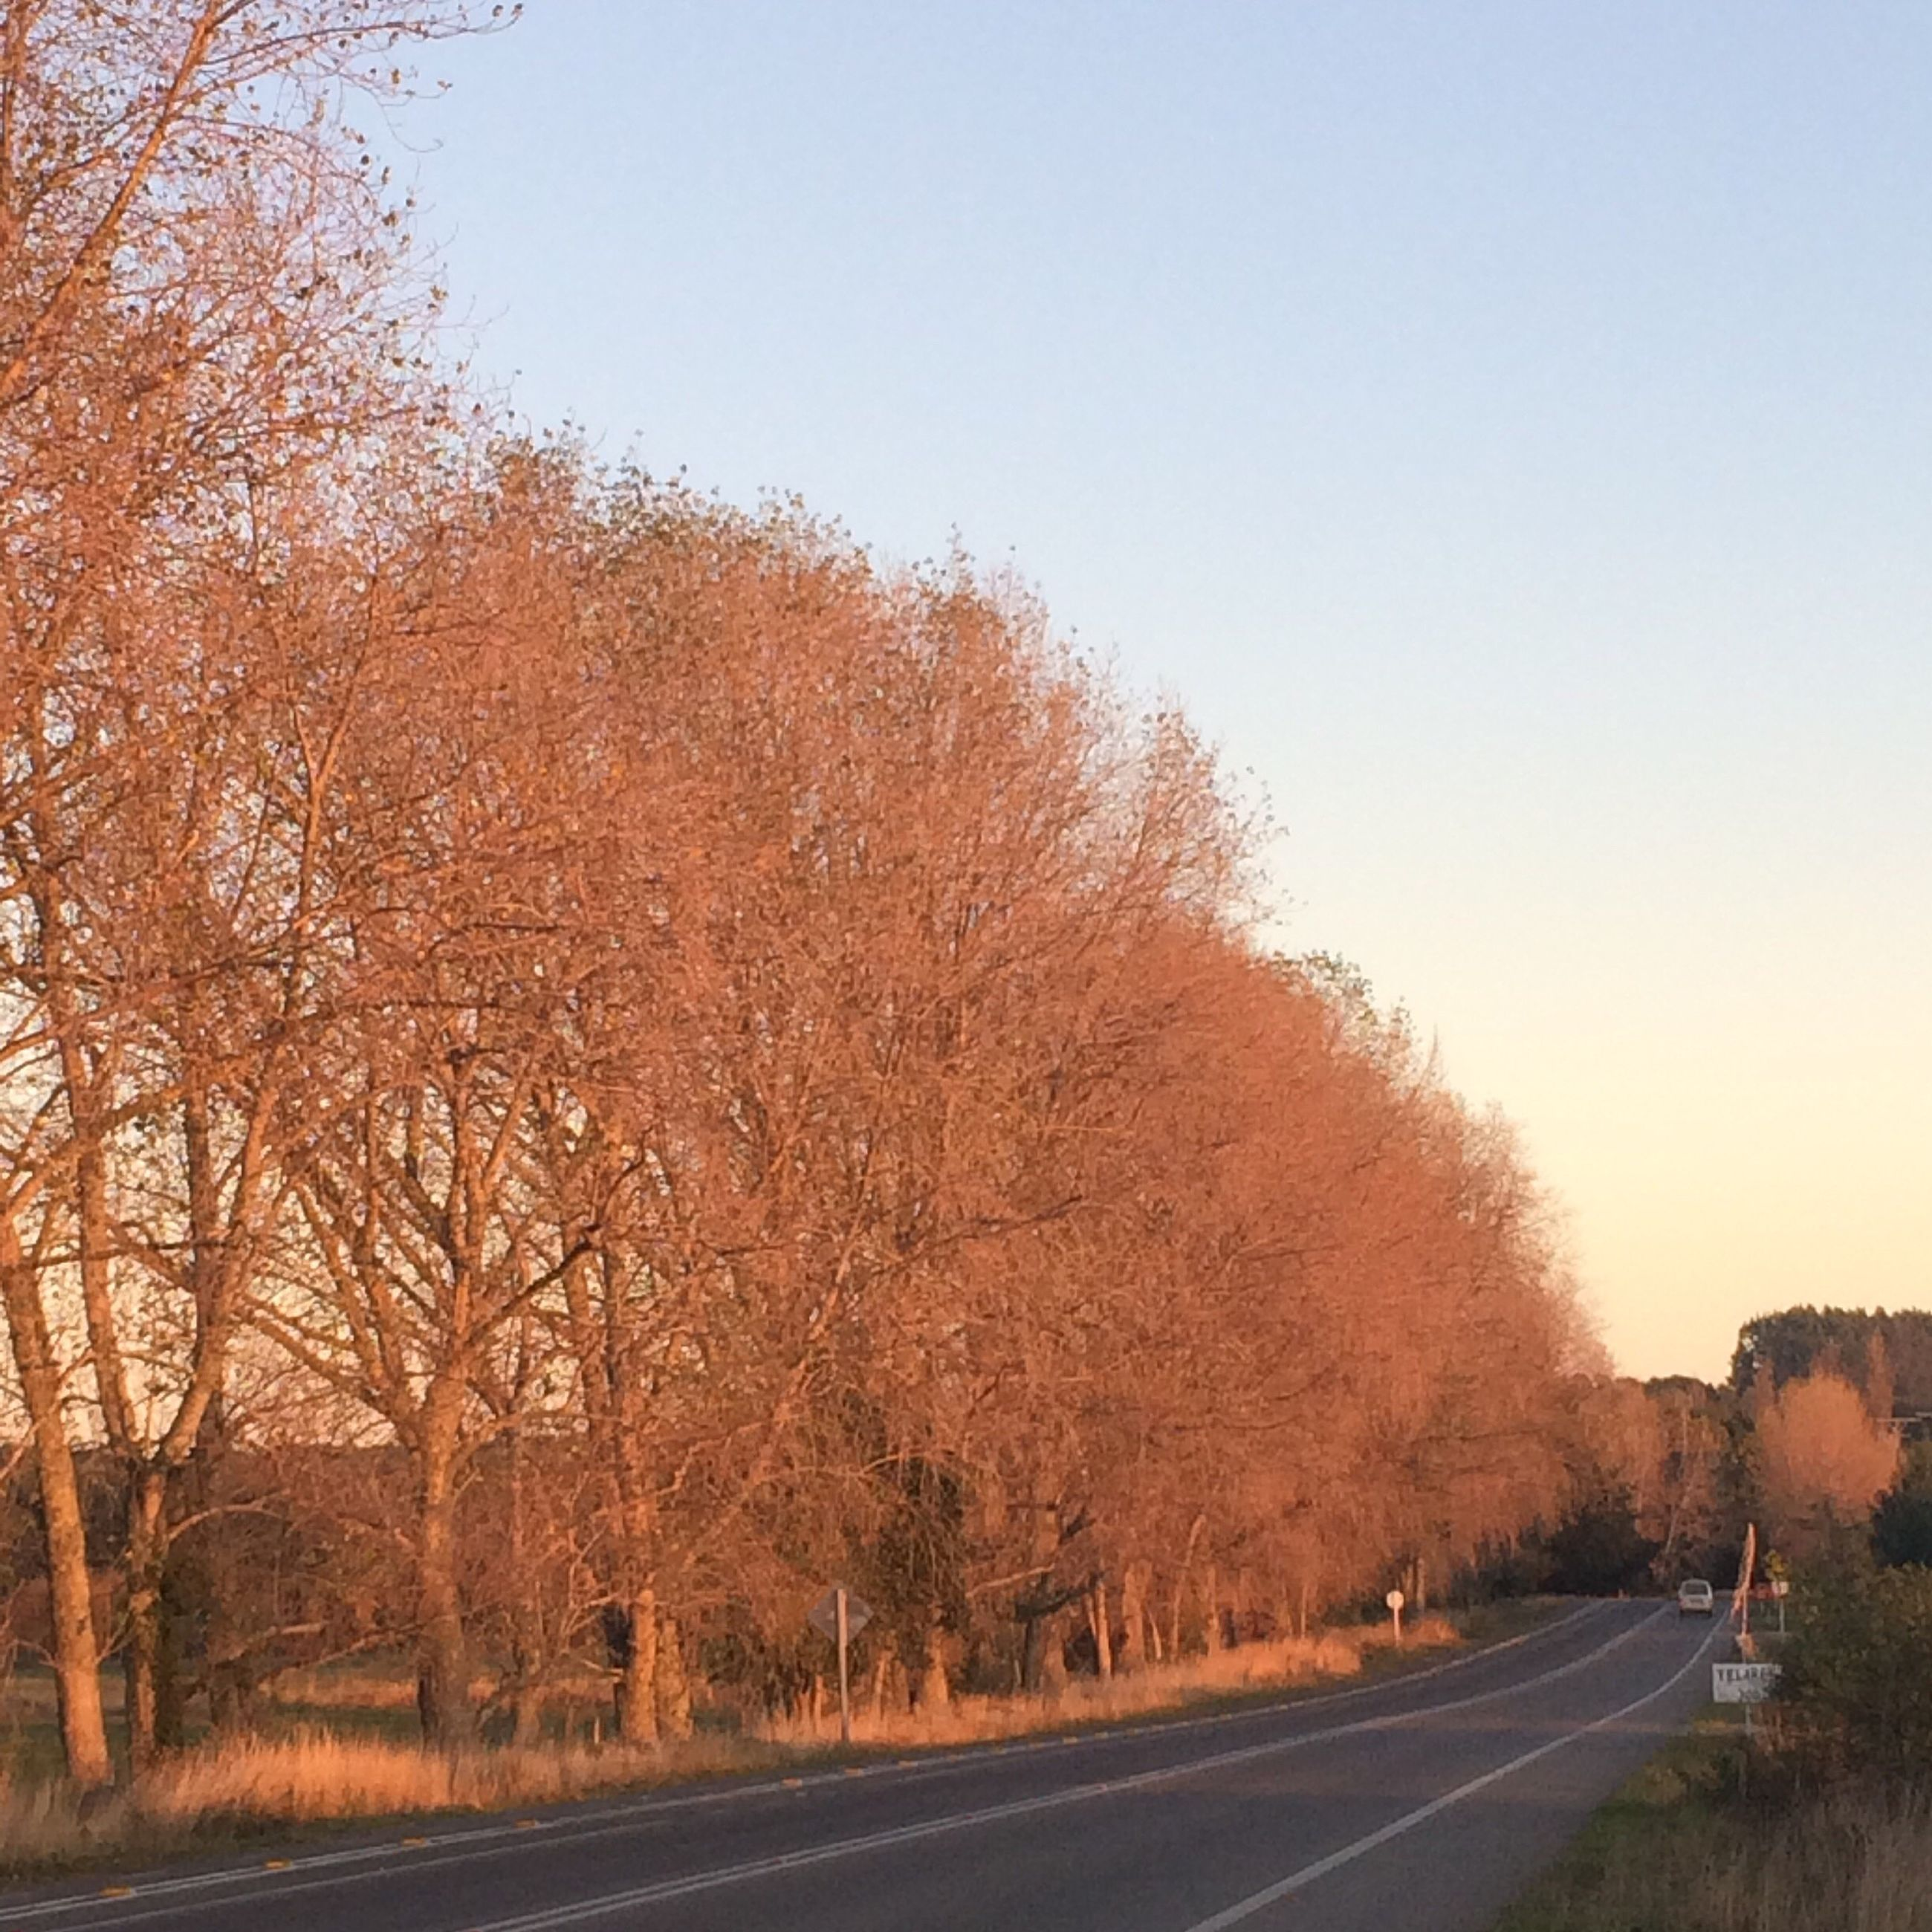 tree, nature, clear sky, road, outdoors, no people, day, sky, beauty in nature